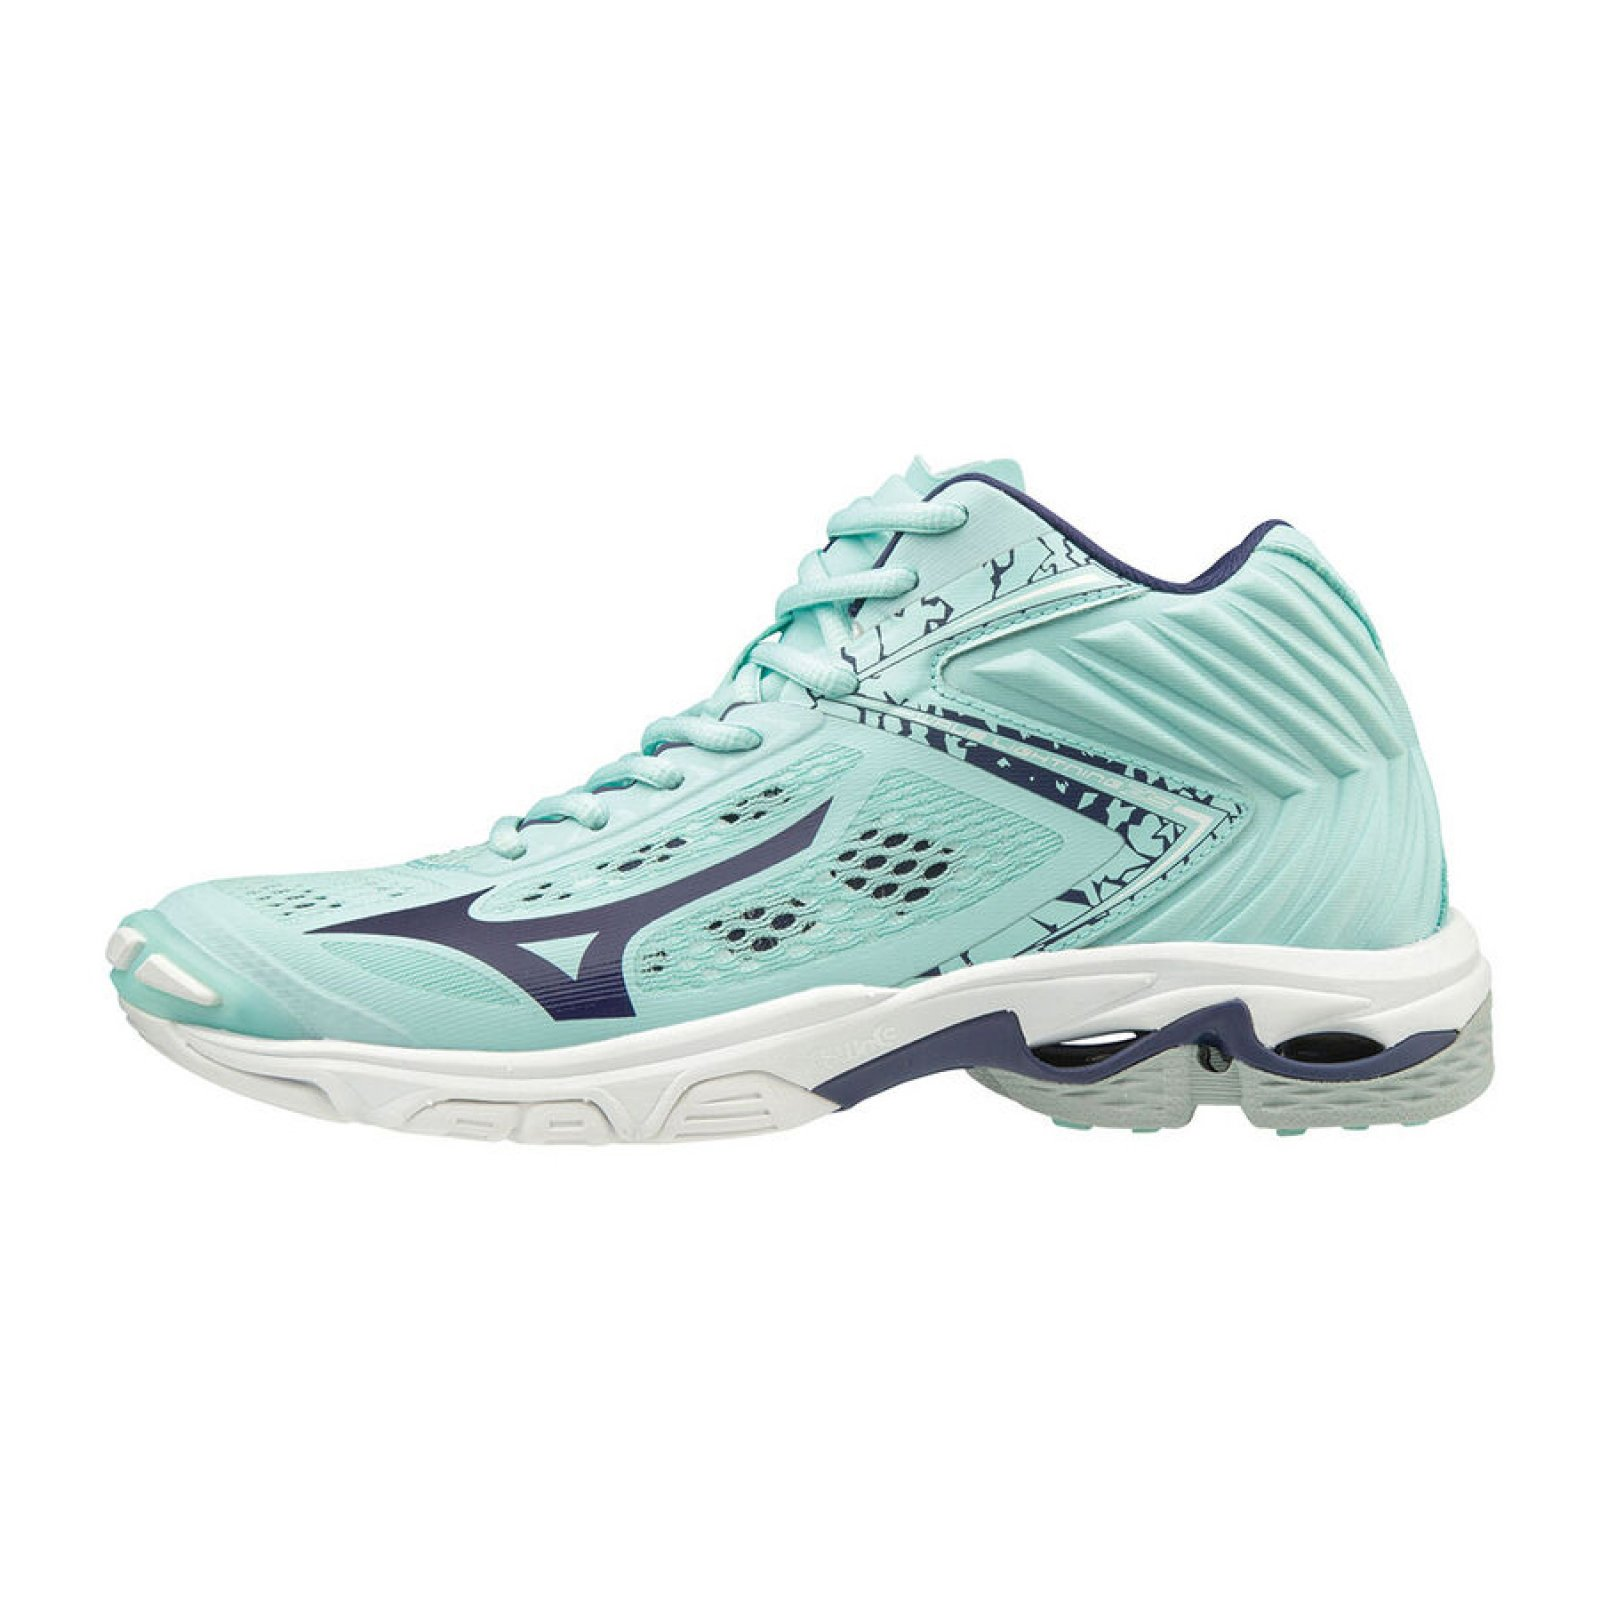 AKCE Mizuno - WAVE LIGHTNING Z5 MID / Blue Light / Astral Aura / Blue Turquoise